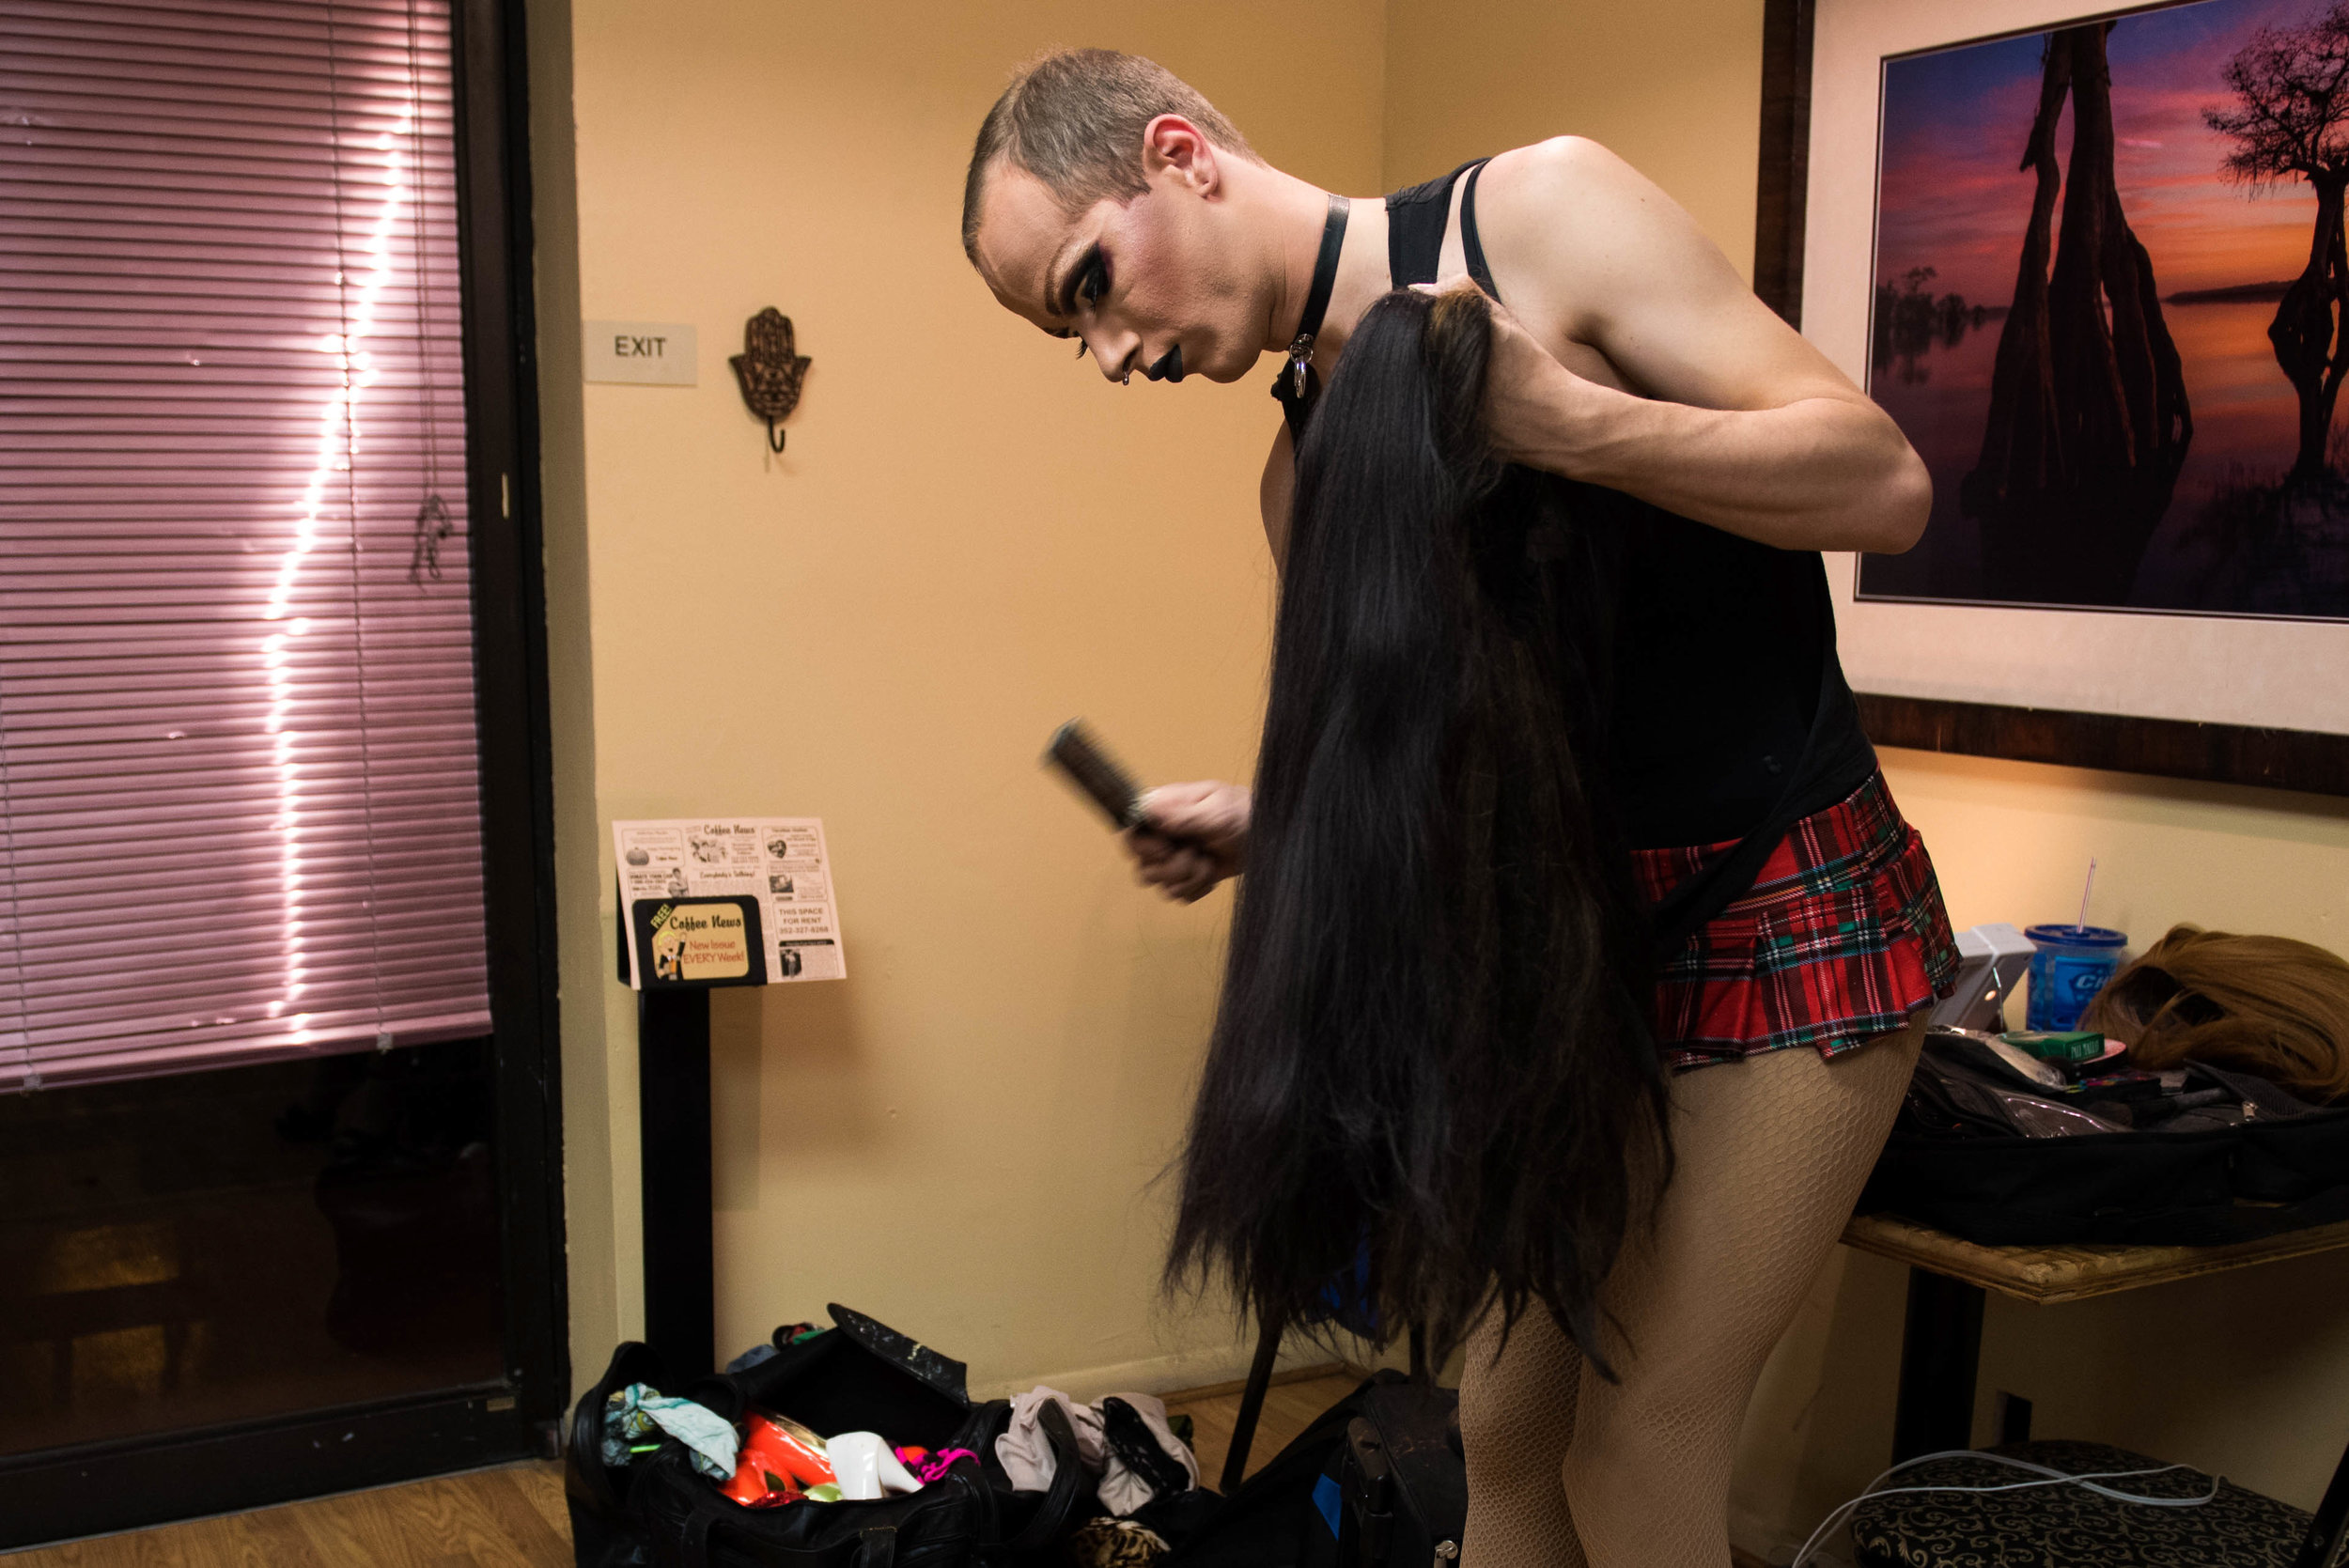 """Koedam brushes out the knots in his black wig a few minutes before his performance. He said Rachel comes more alive with each step — so he puts time and care into the details. """"I love when someone looks at me as Rachel and doesn't believe I'm a boy,"""" Koedam said."""